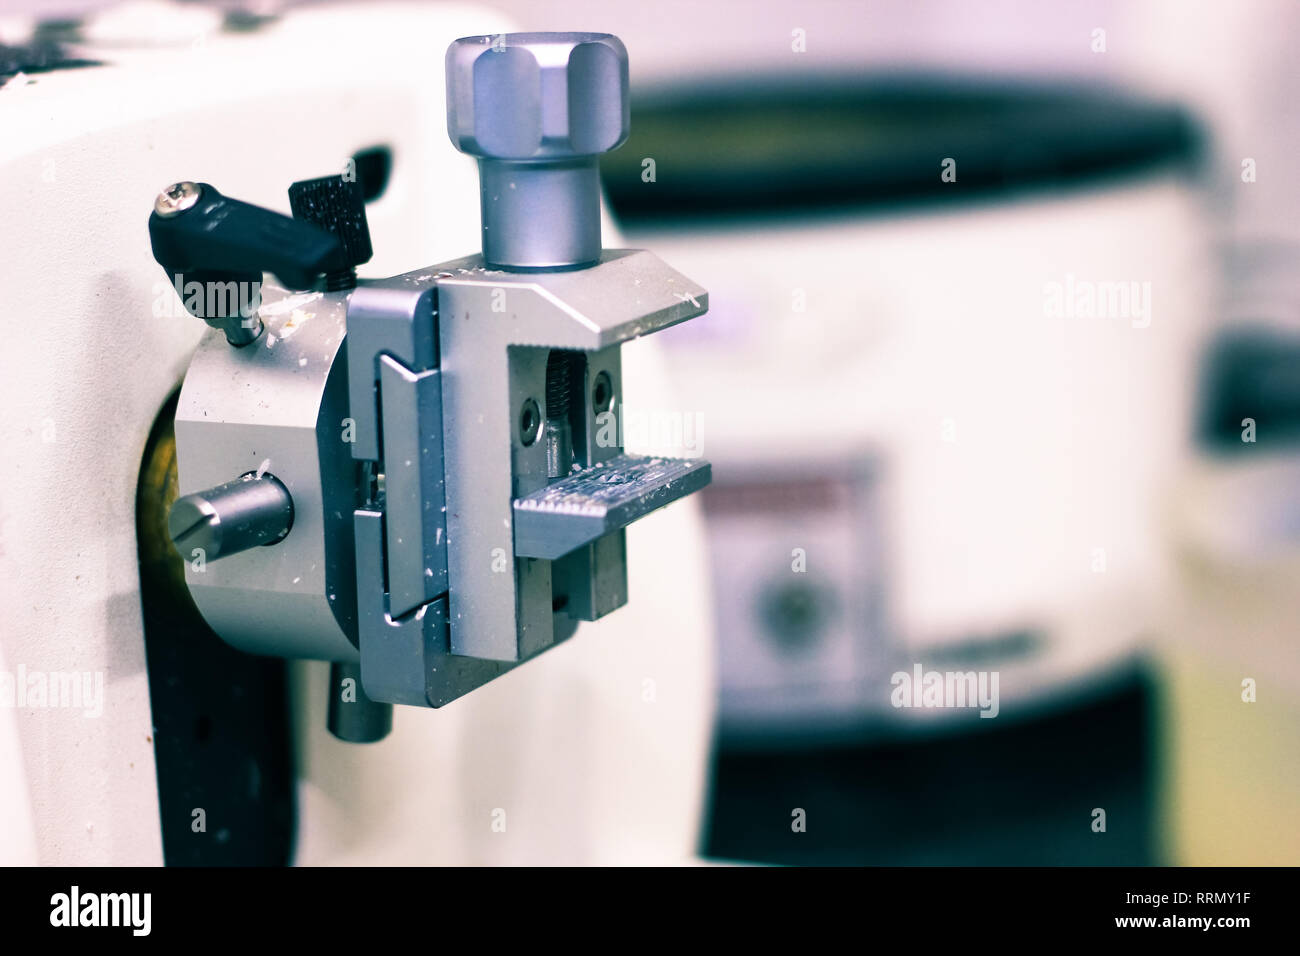 a pathological tissue grossing section thin slice making microtome for hitopathological analysis - Stock Image